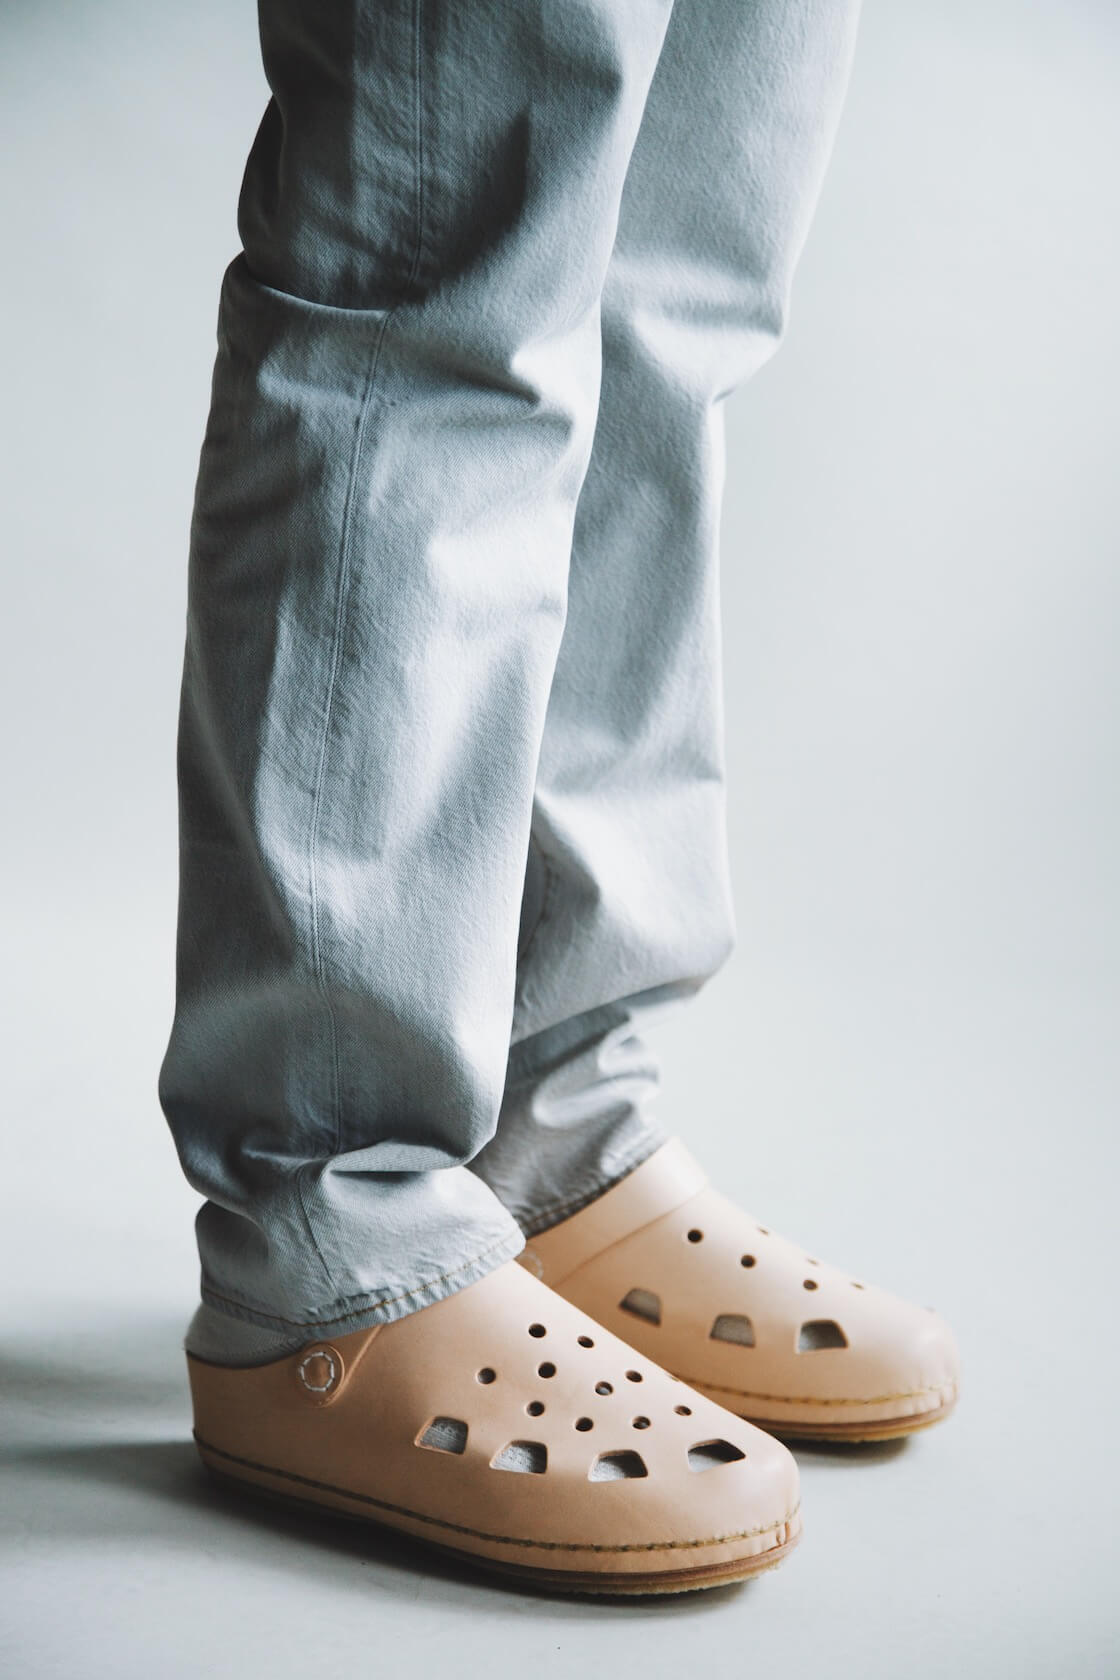 lvc 1984 501 jeans and hender scheme mip-18 shoes on body